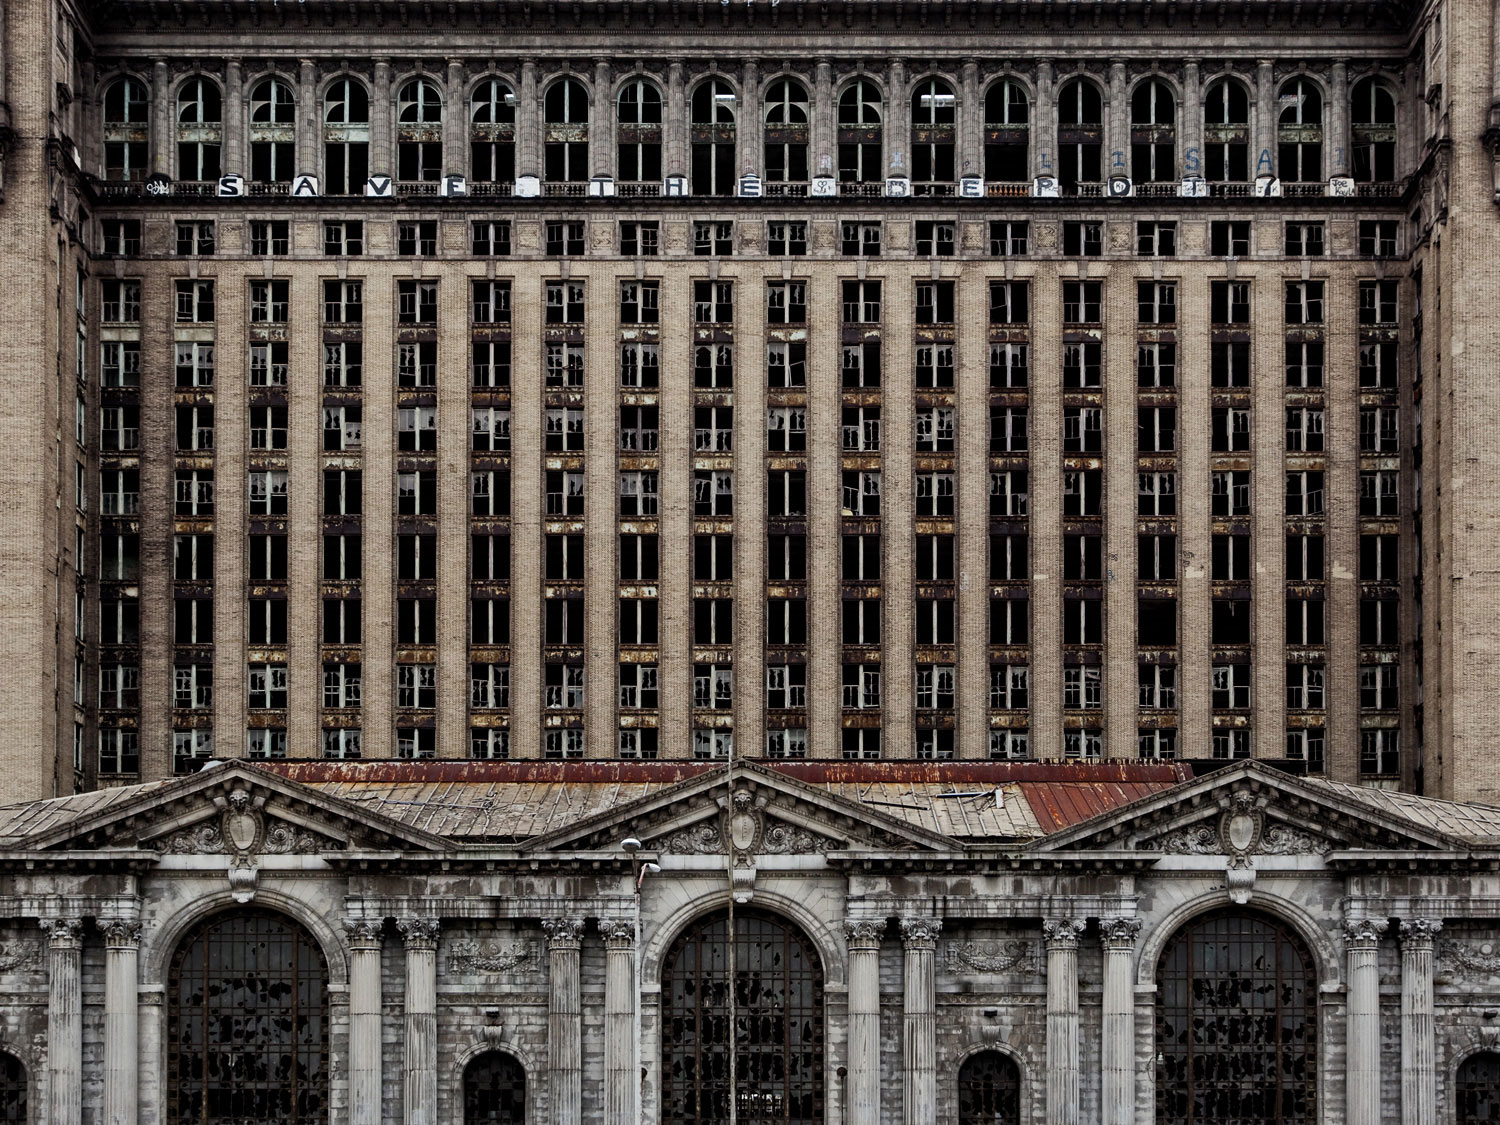 Detroit, MI &#8211; Michigan Central Train Station